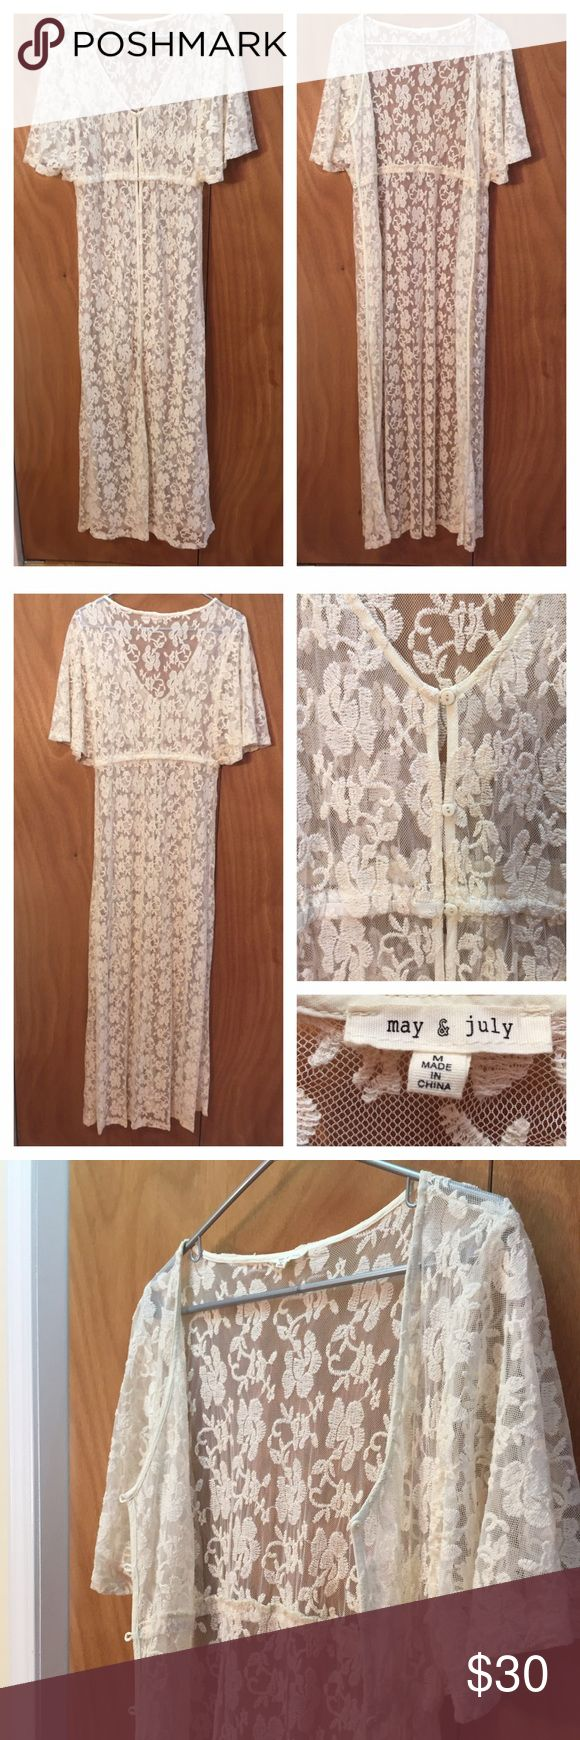 Seasonal Off White Lace Kimono!!  Brand NWOT! This Lace Kimono made by 'May & July' is boutique. Made of 85% Cotton & 15% Nylon. This piece features:*Loop hole buttons all the way to the knee line. *At the waste also has elastic band for form fitting & stretch if needed! May & June Tops